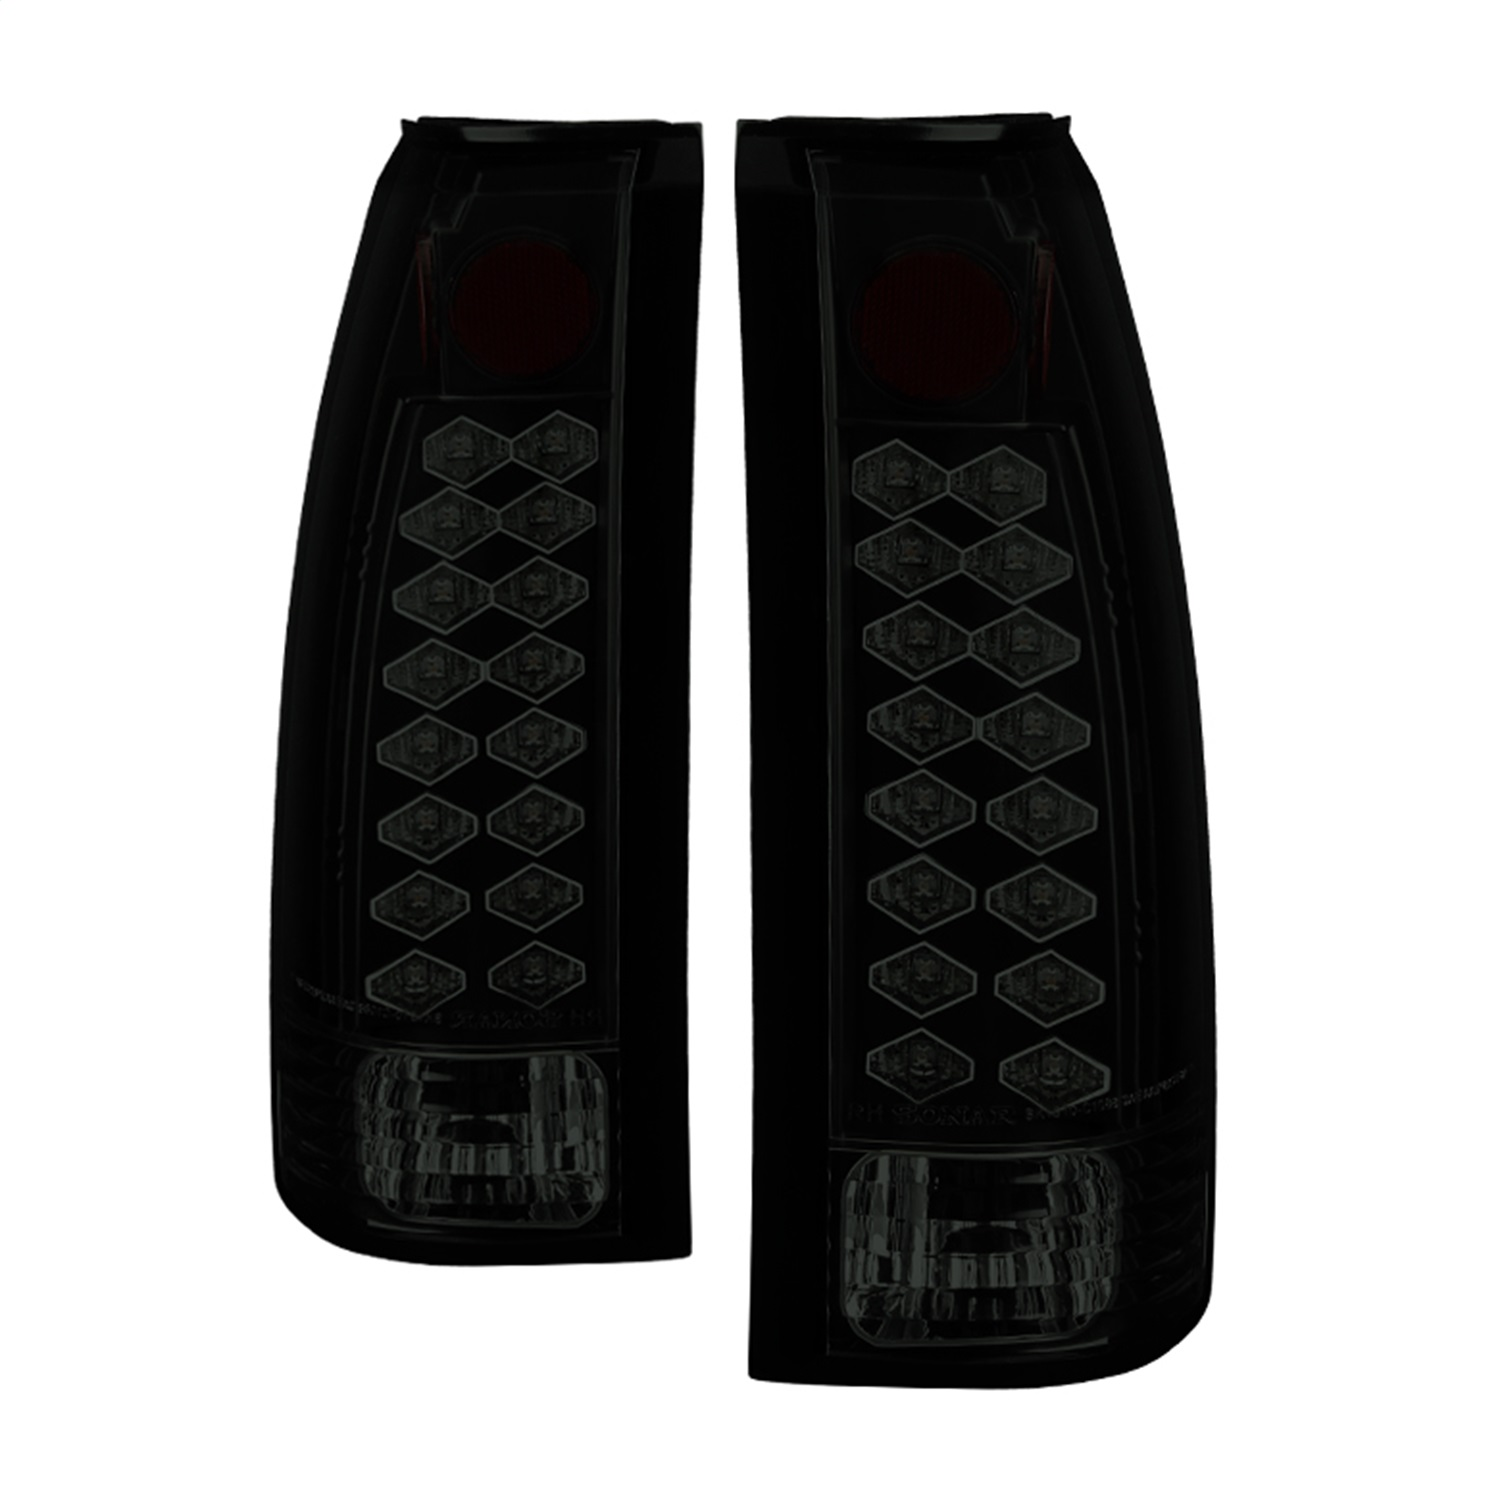 Spyder Auto 5077981 LED Tail Lights